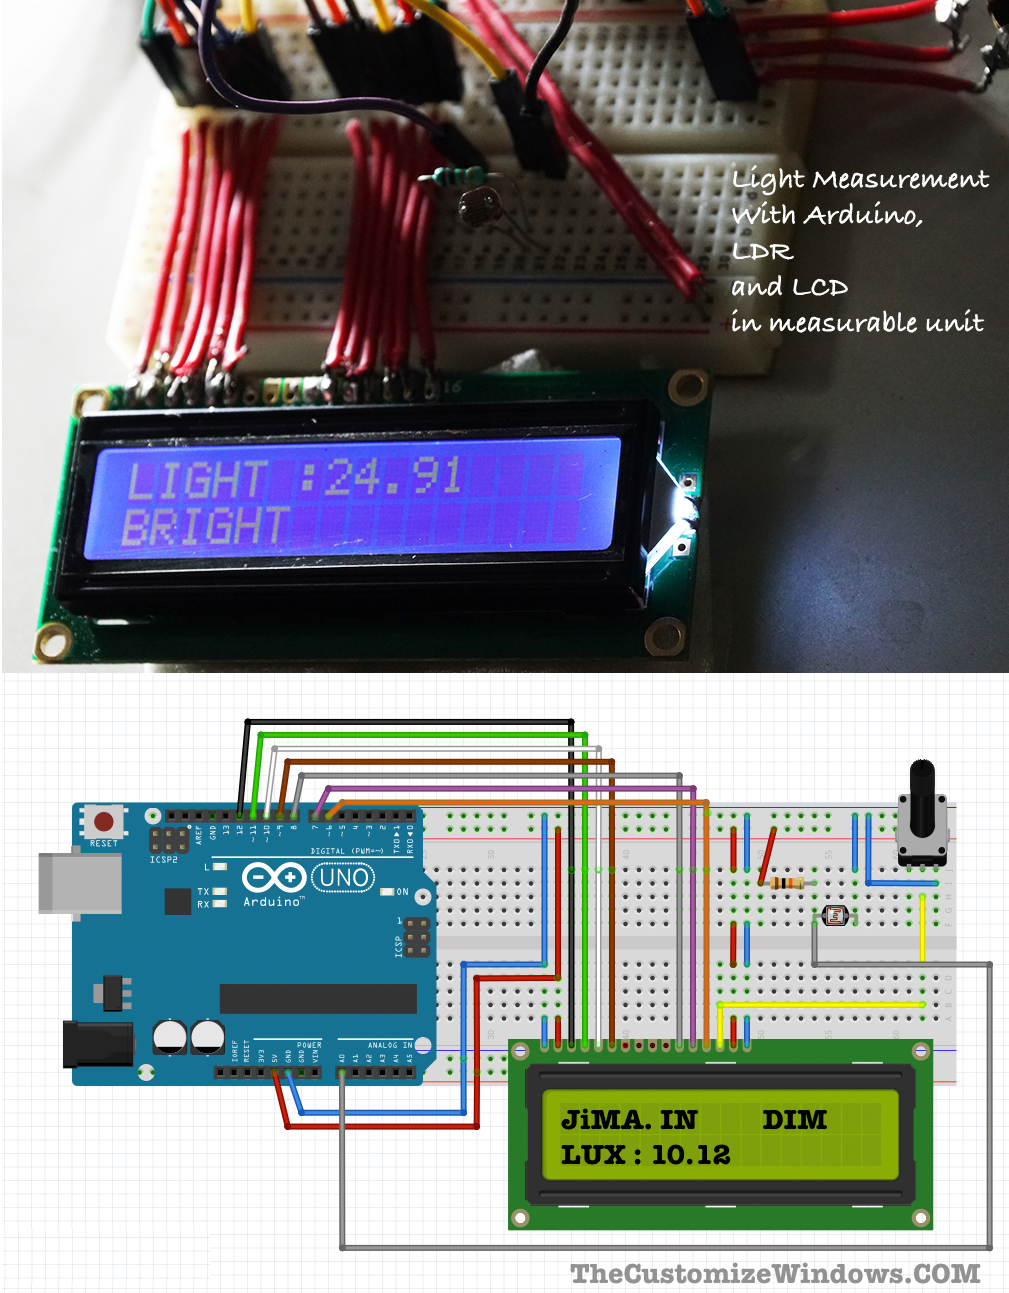 Light-Measurement-With-Arduino-LDR-LCD